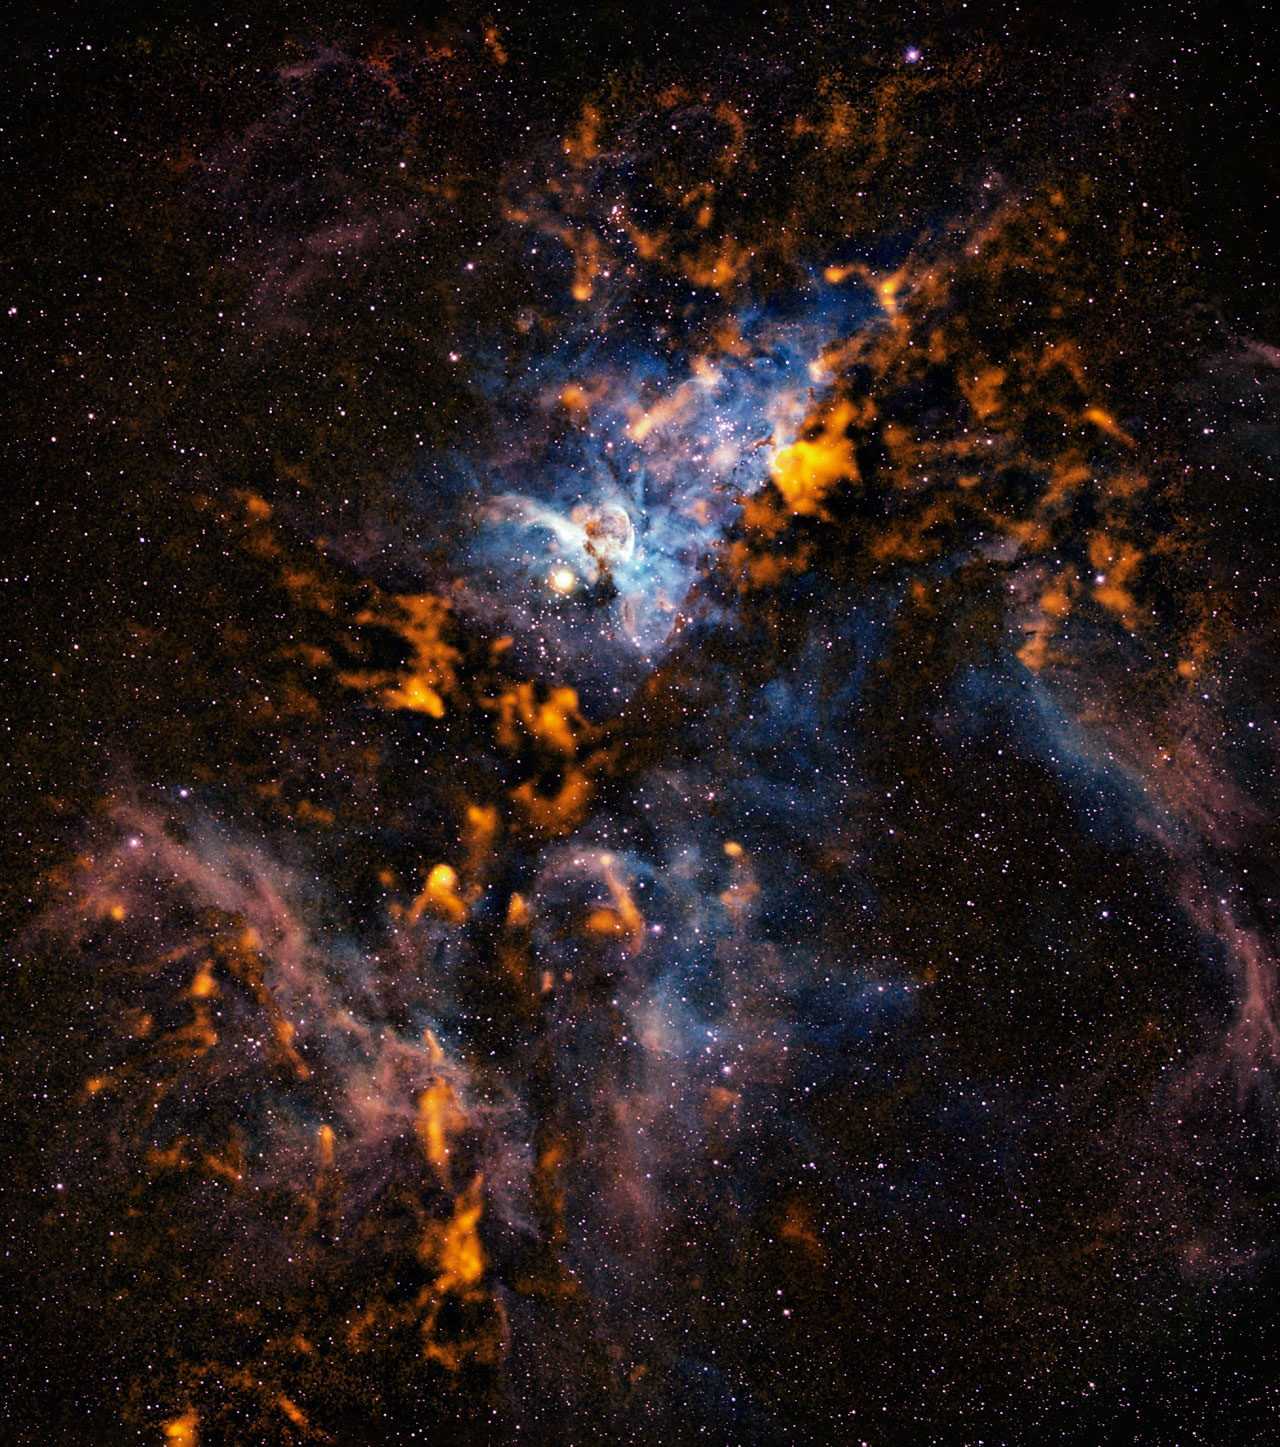 The cool clouds of Carina